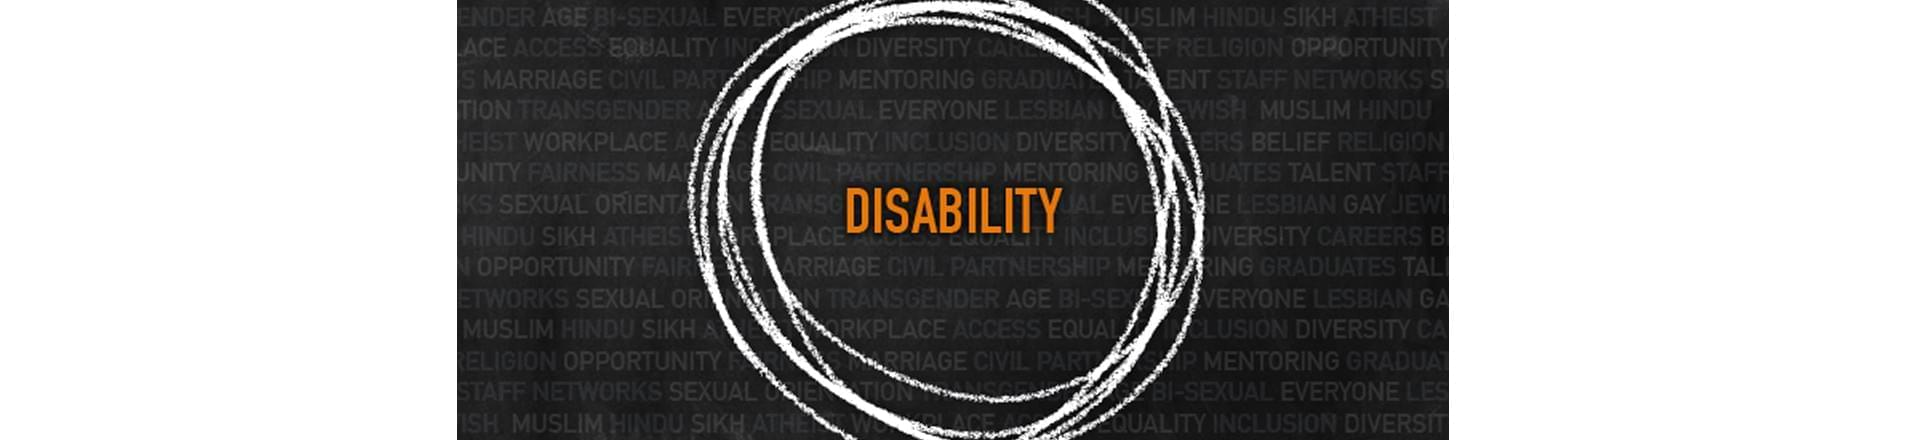 the word 'Disability'